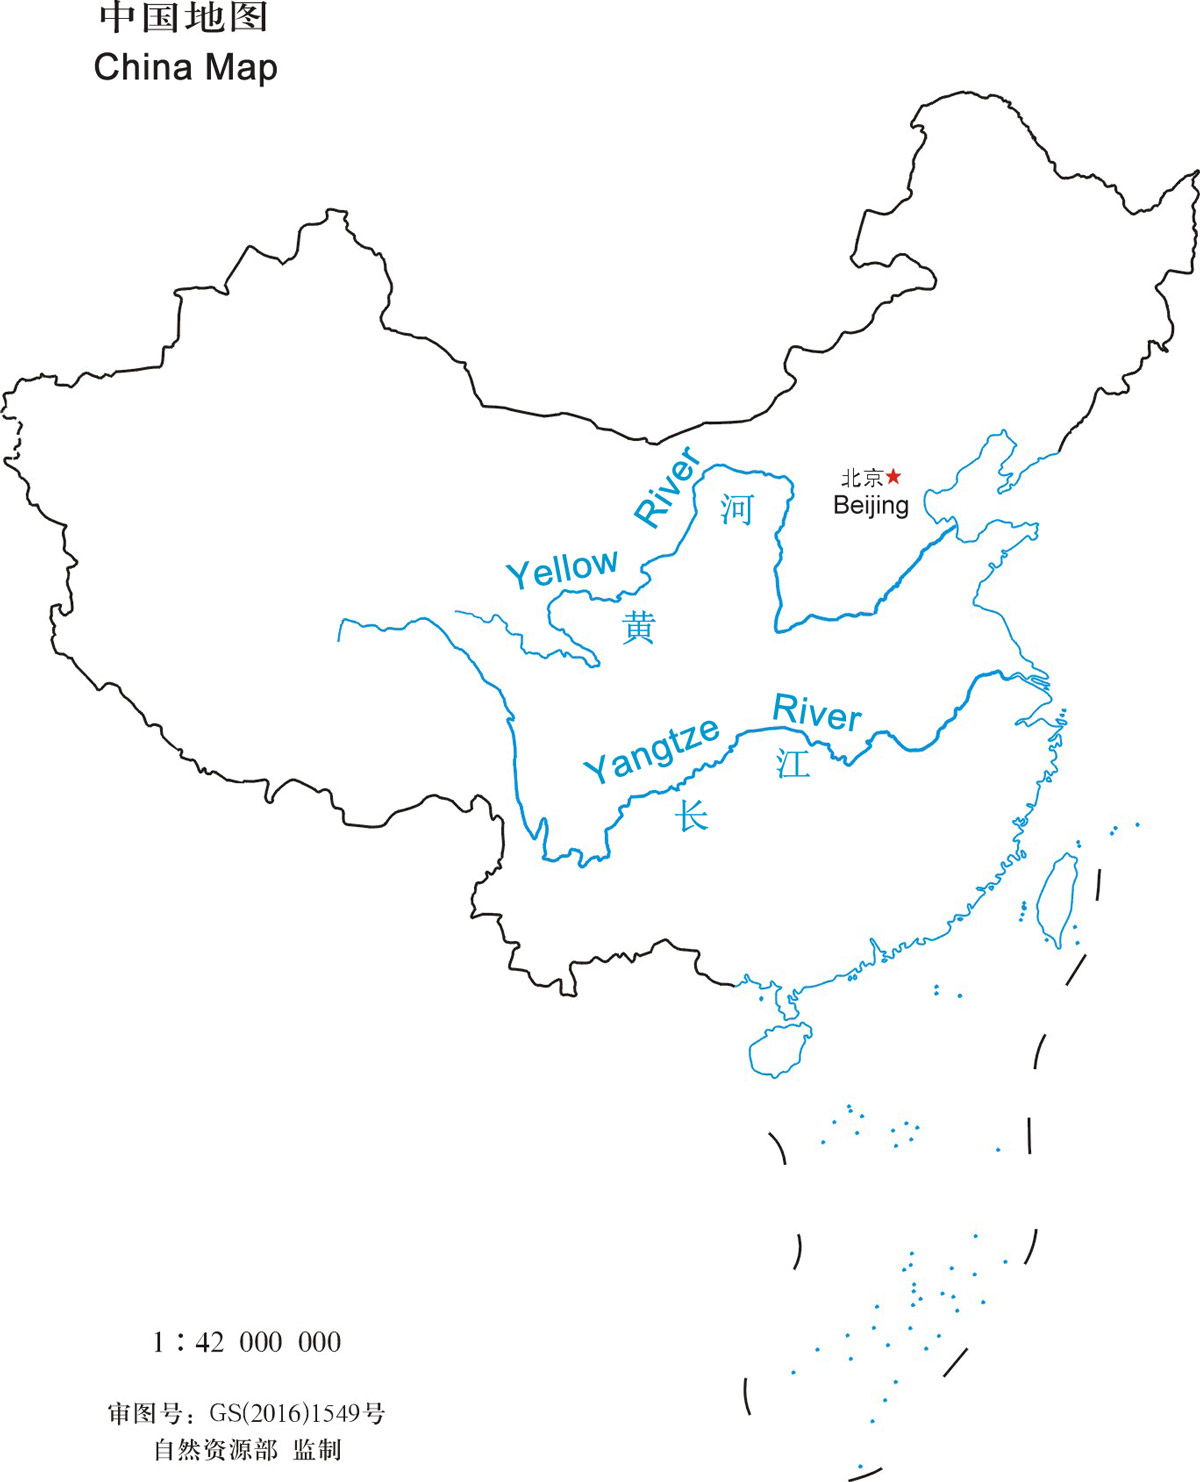 China Rivers Map Important Rivers In China - China map